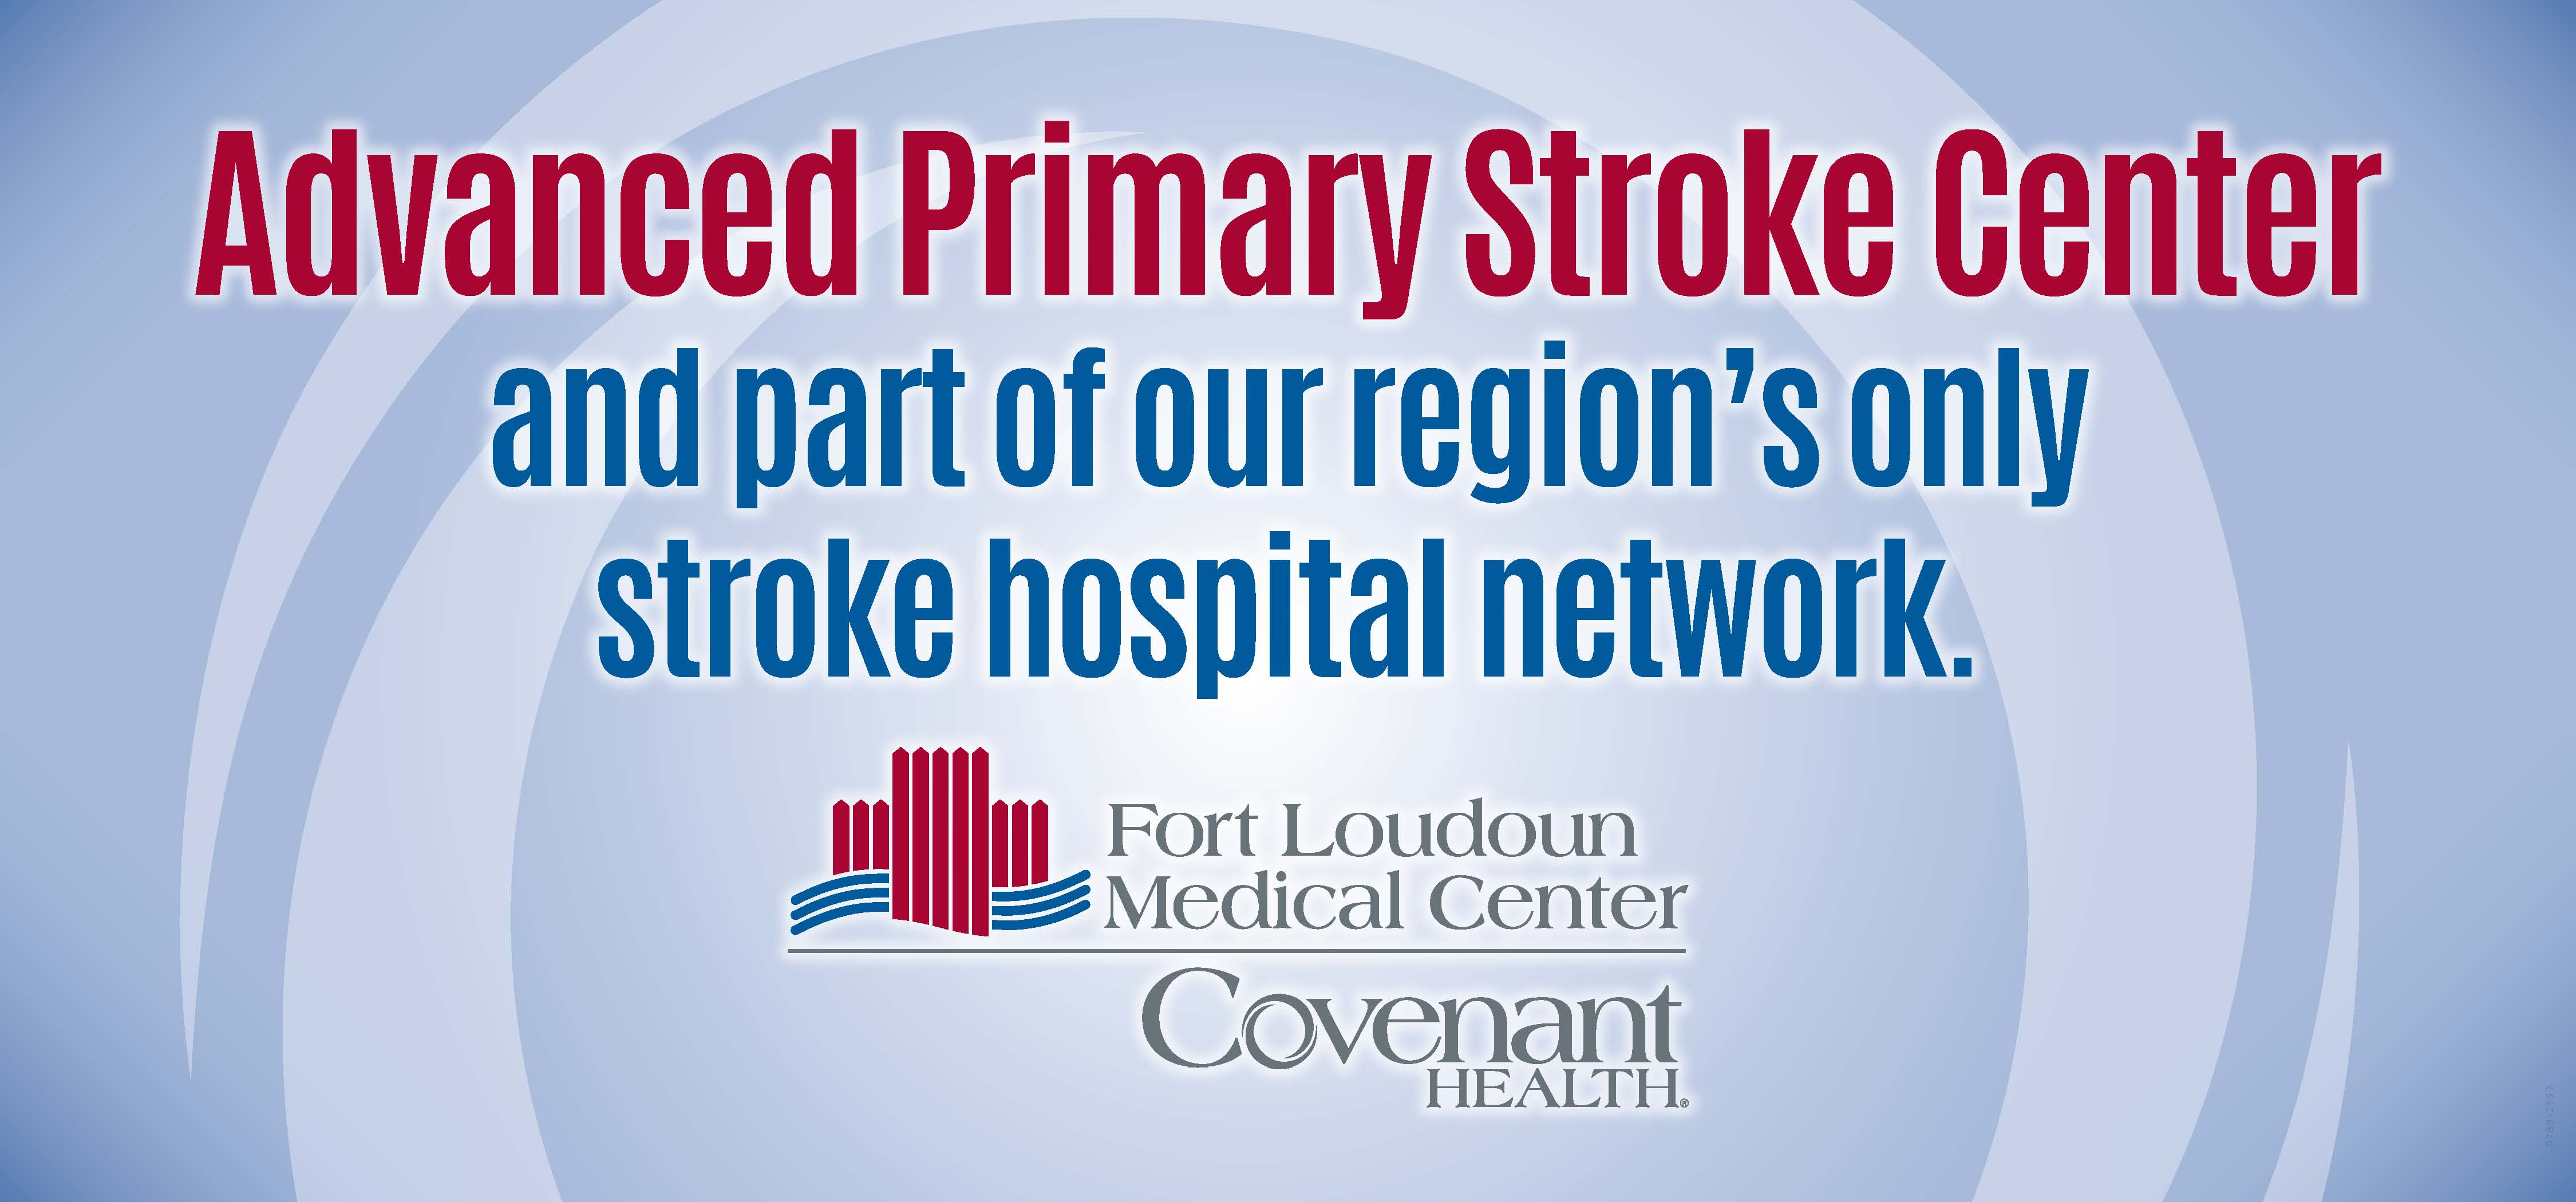 Fort Loudoun Medical Center is now an Advanced Primary Storke Center.